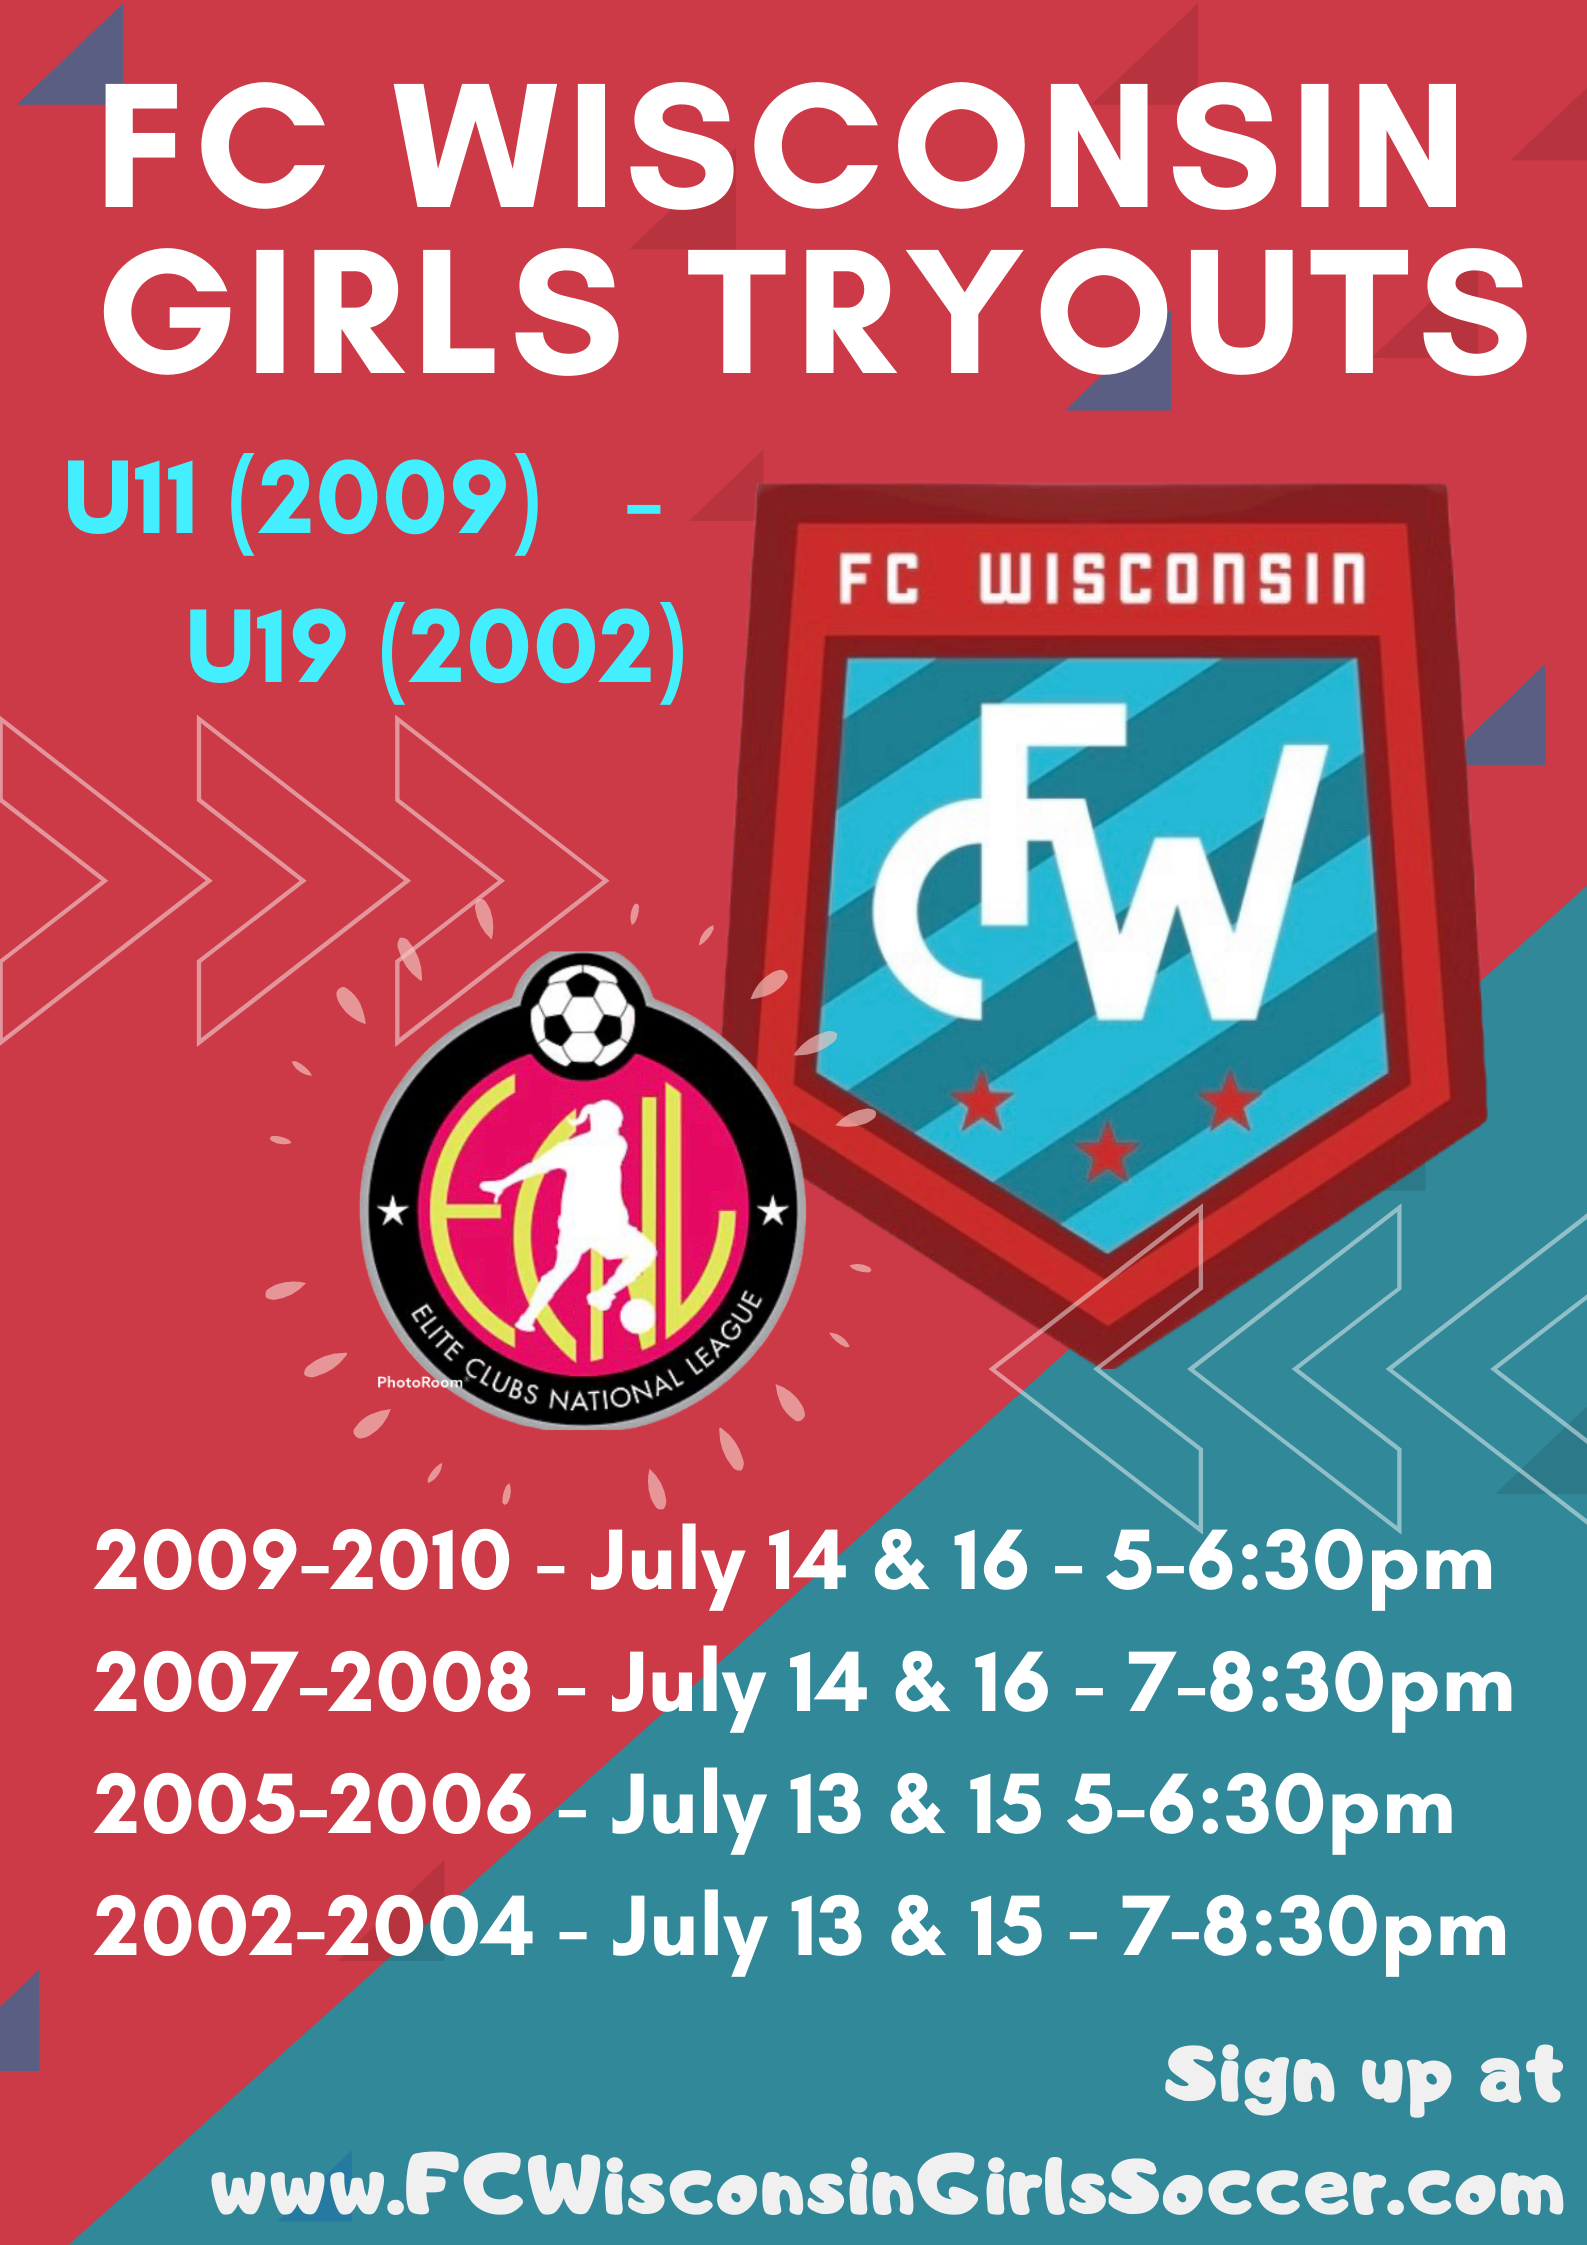 July 13 - 17: Tryouts